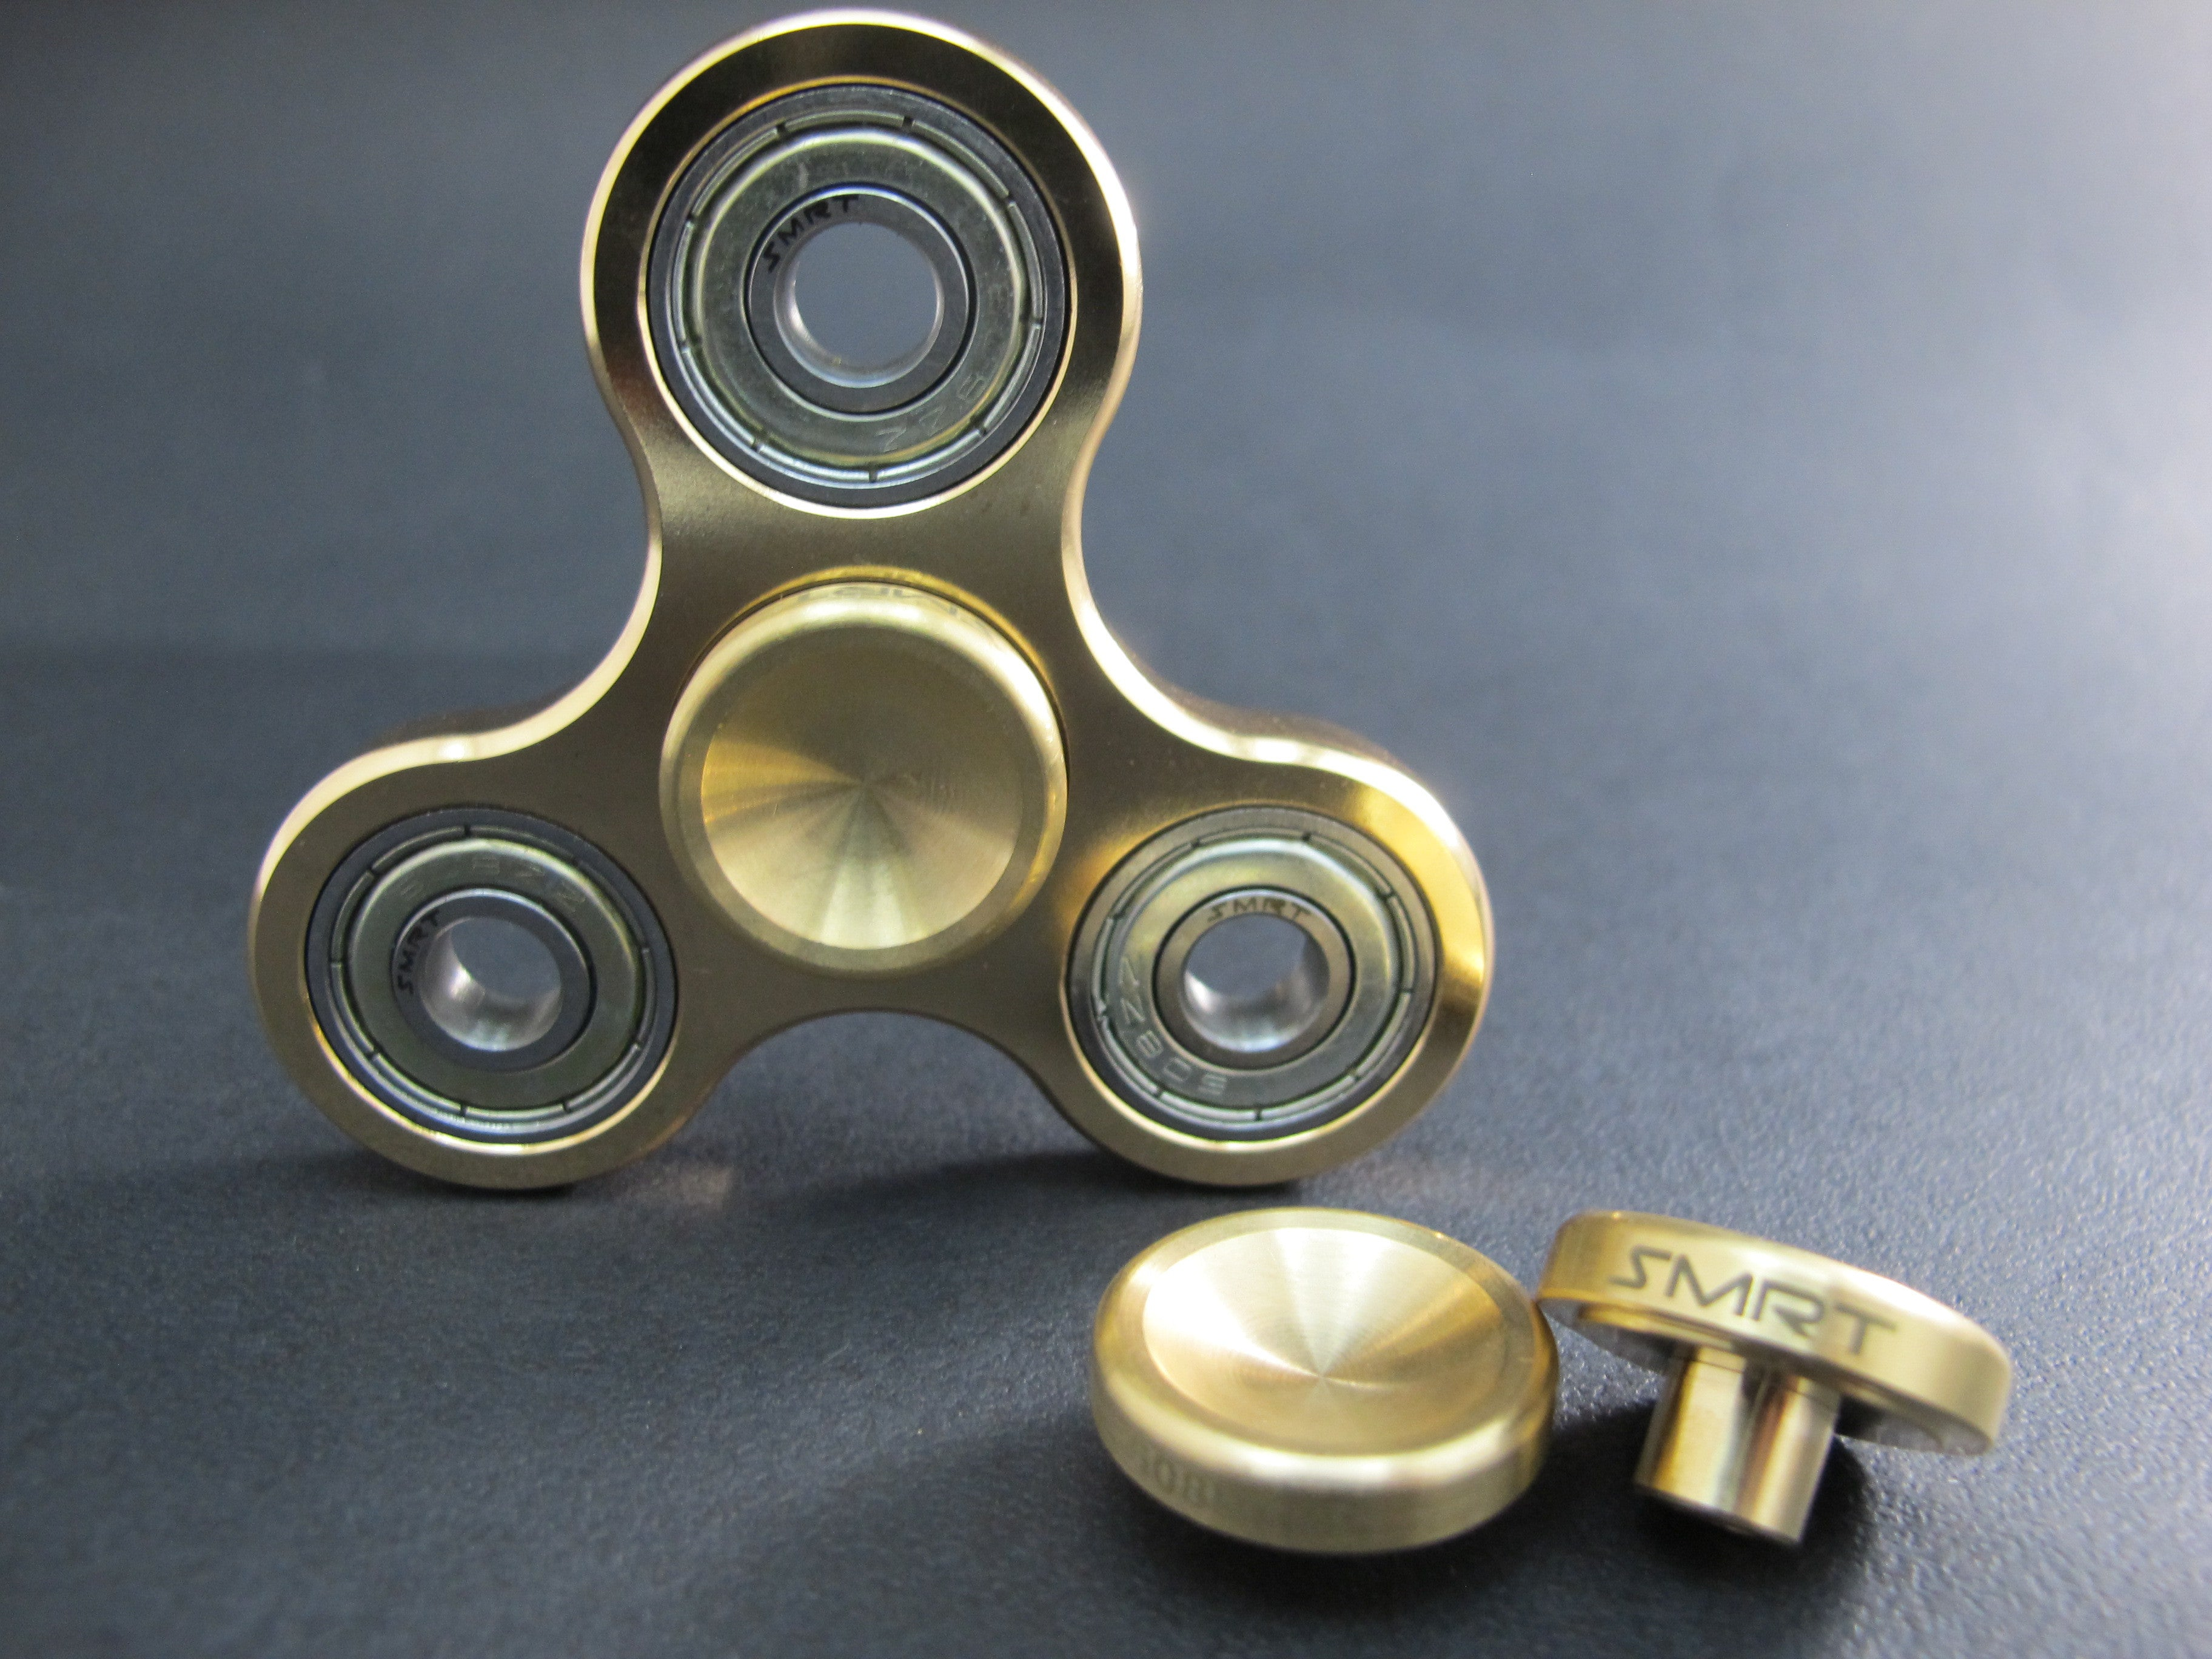 Gadget - 608 bearing button for Fidget Spinners (Brass Concave Br02)